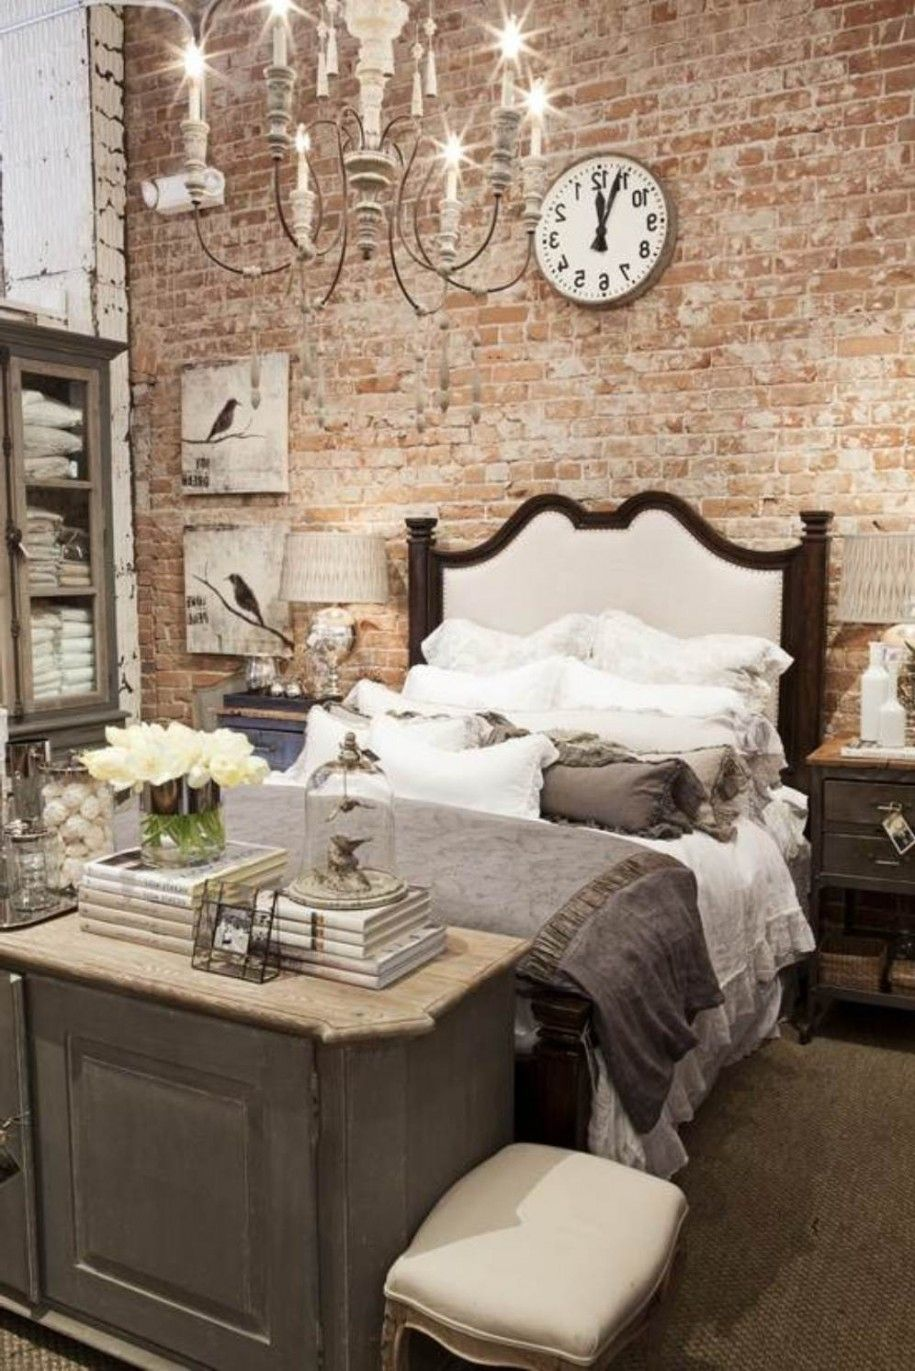 Rustic Design Ideas rustic kitchen ideas soft 25 Amazing Bedrooms With Brick Walls